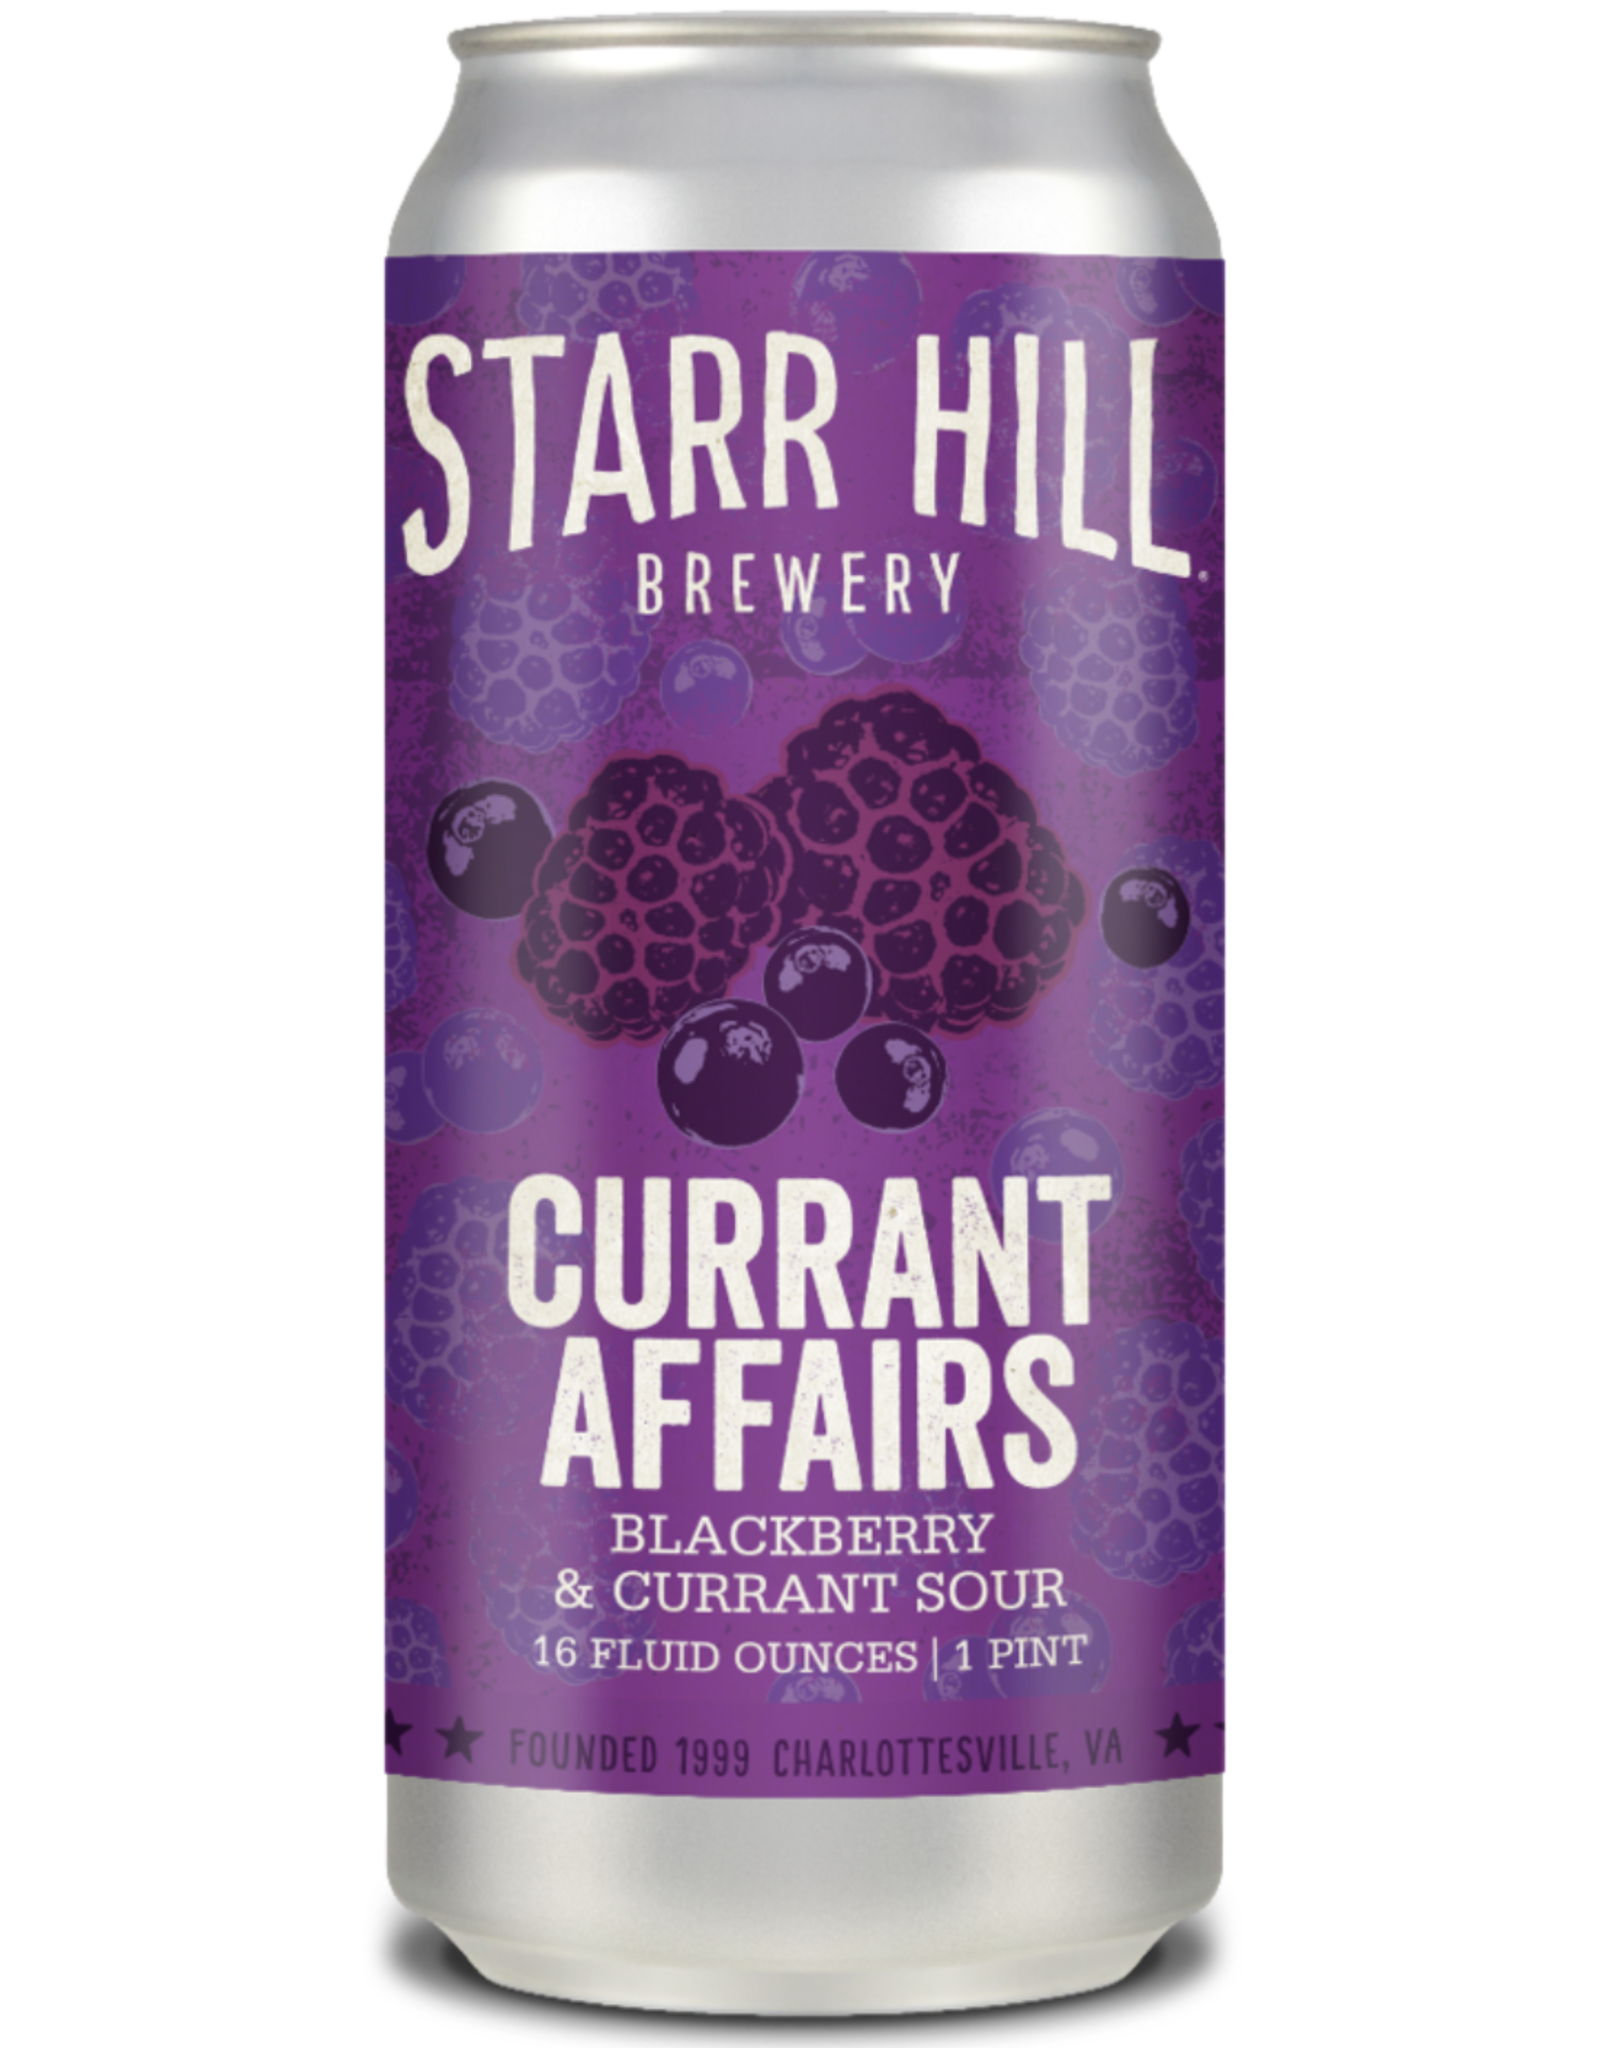 Starr Hill Starr Hill Currant Affairs Blackberry & Currant Sour